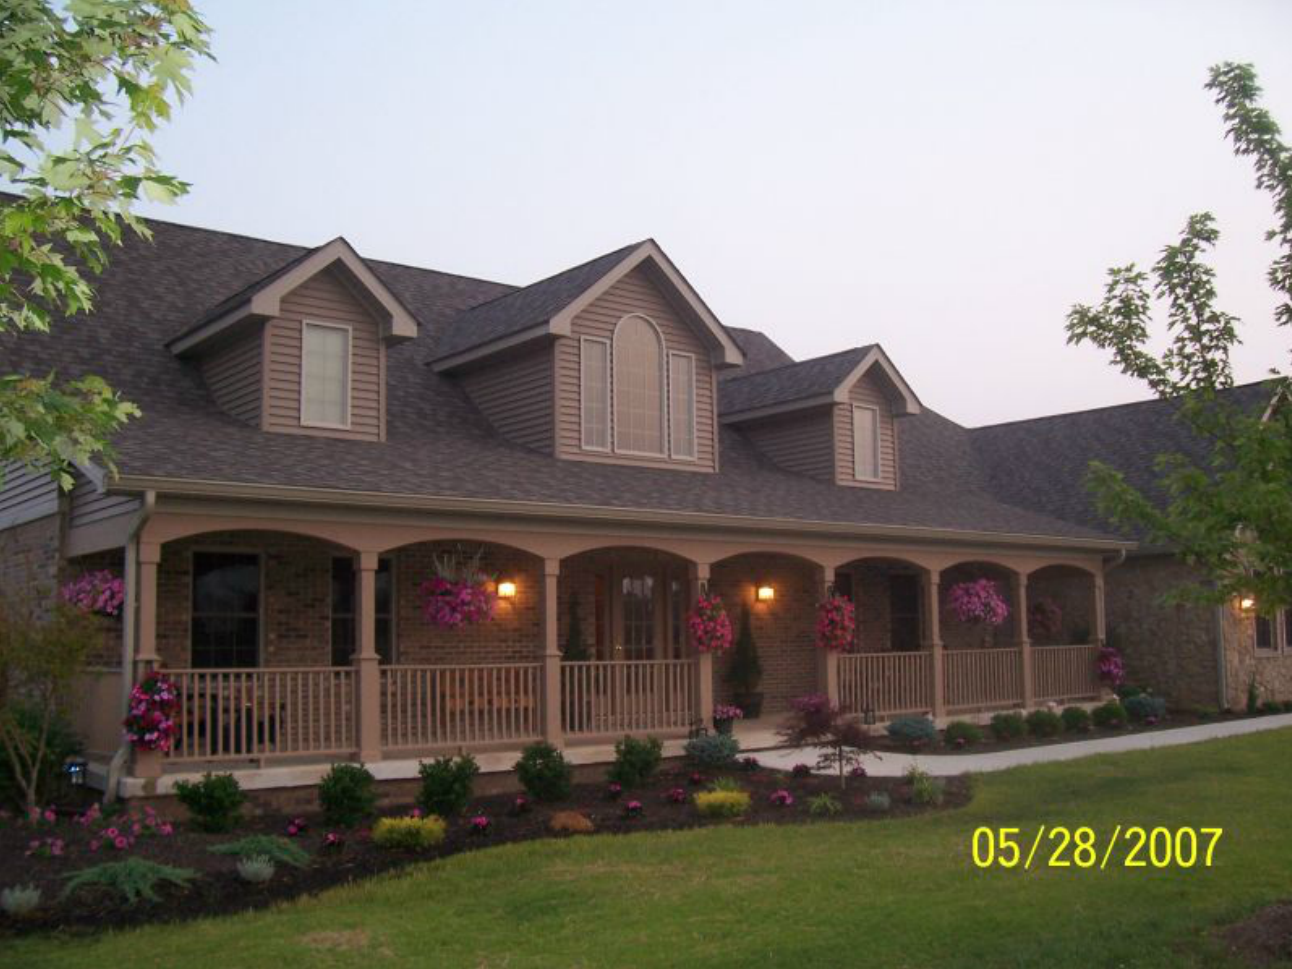 Midwest residential landscaping example columbus in for Midwest living house plans